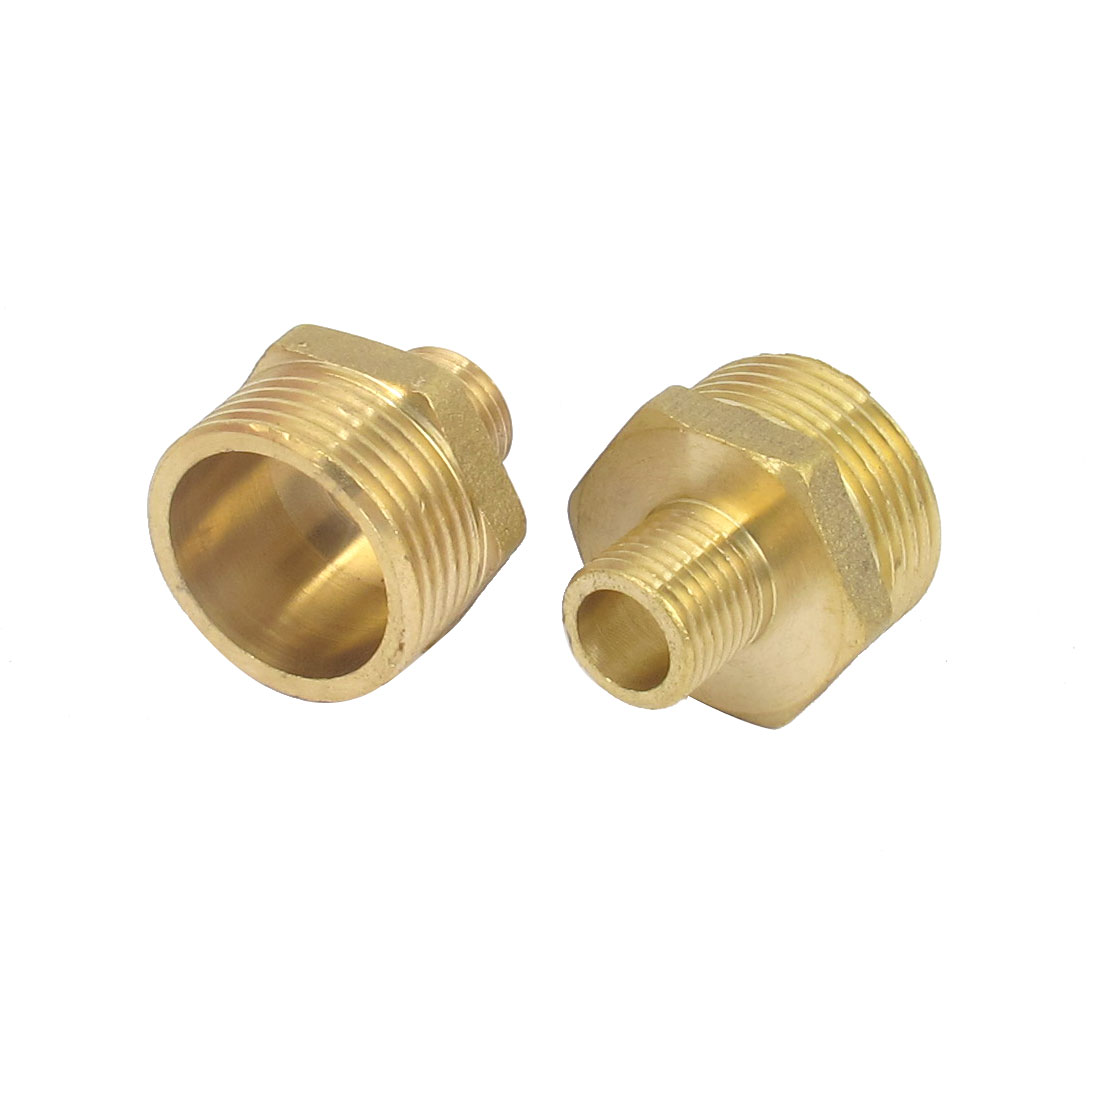 2 Pcs 3/4BSP to 1/4BSP Male Thread Brass Pipe Hex Nipple Fitting Quick Adapter